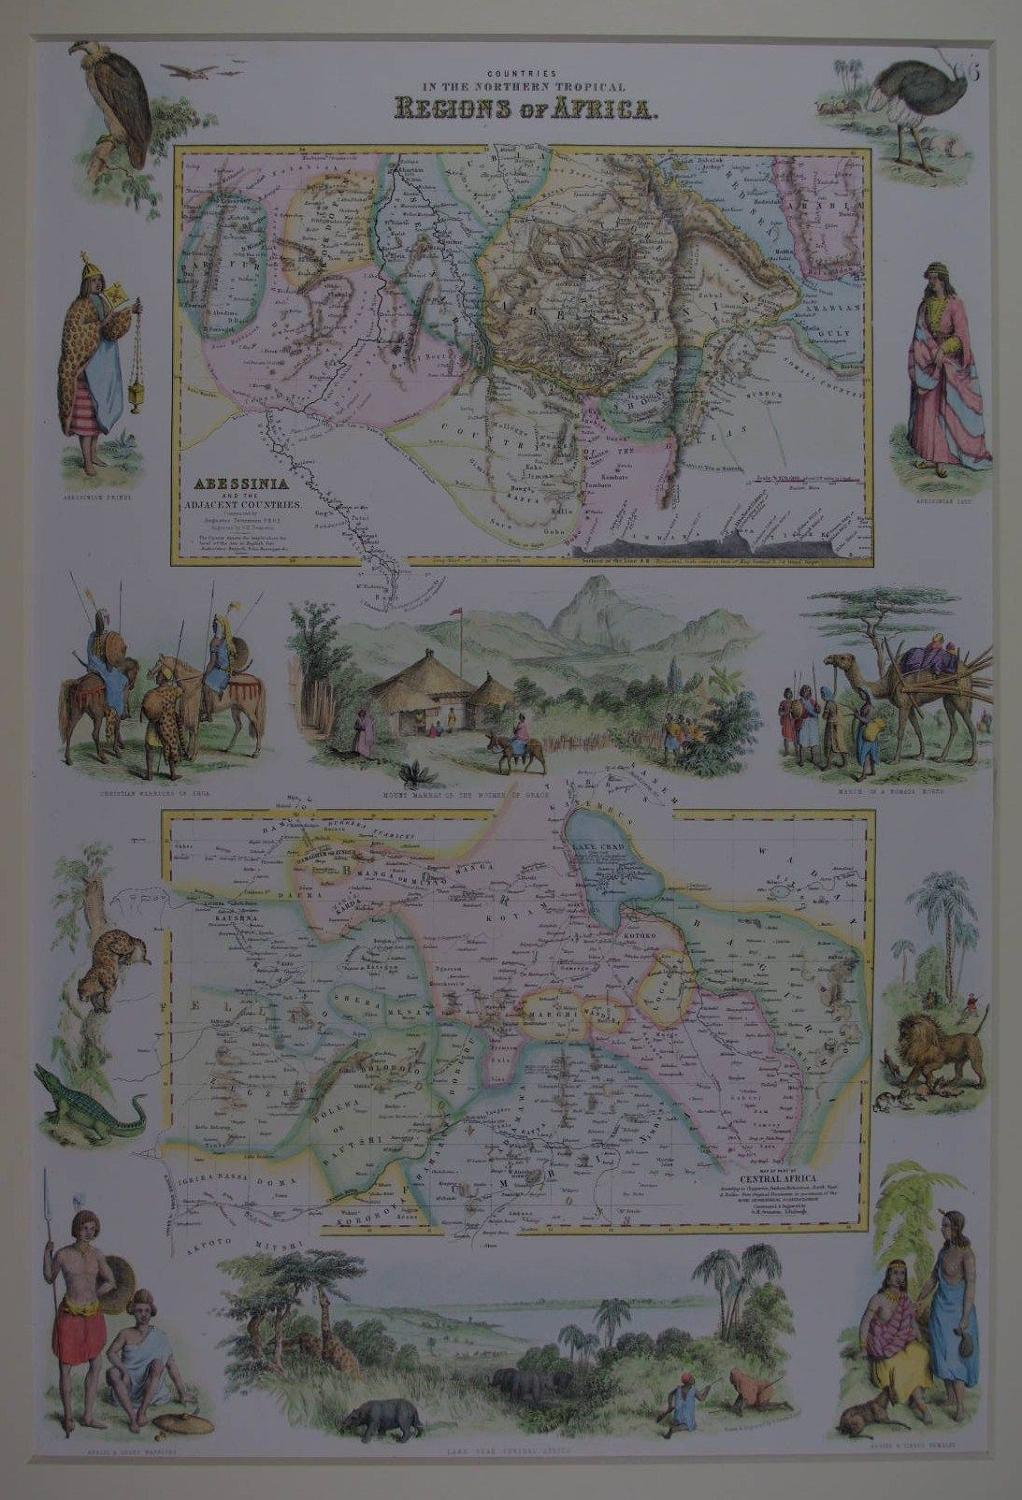 Countries in the Northern Tropical Regions of Africa by Archibald Full